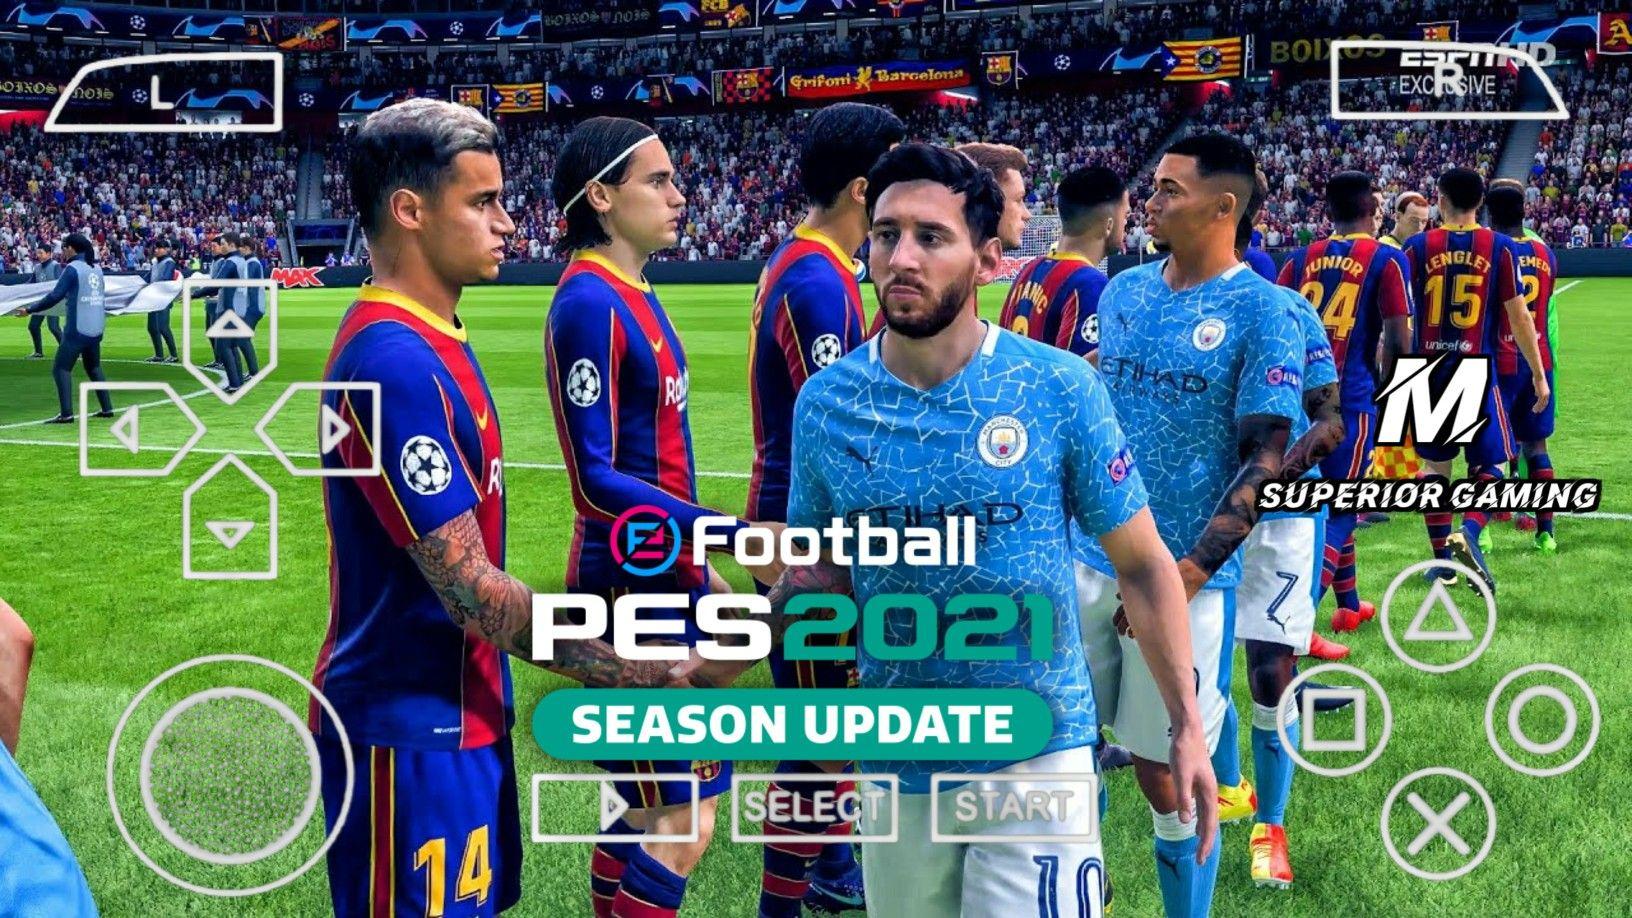 Pes 2021 Ppsspp Download Mediafire Link Terbaru 600mb Android Offline Best Graphics Install Game Destiny Game Best Graphics